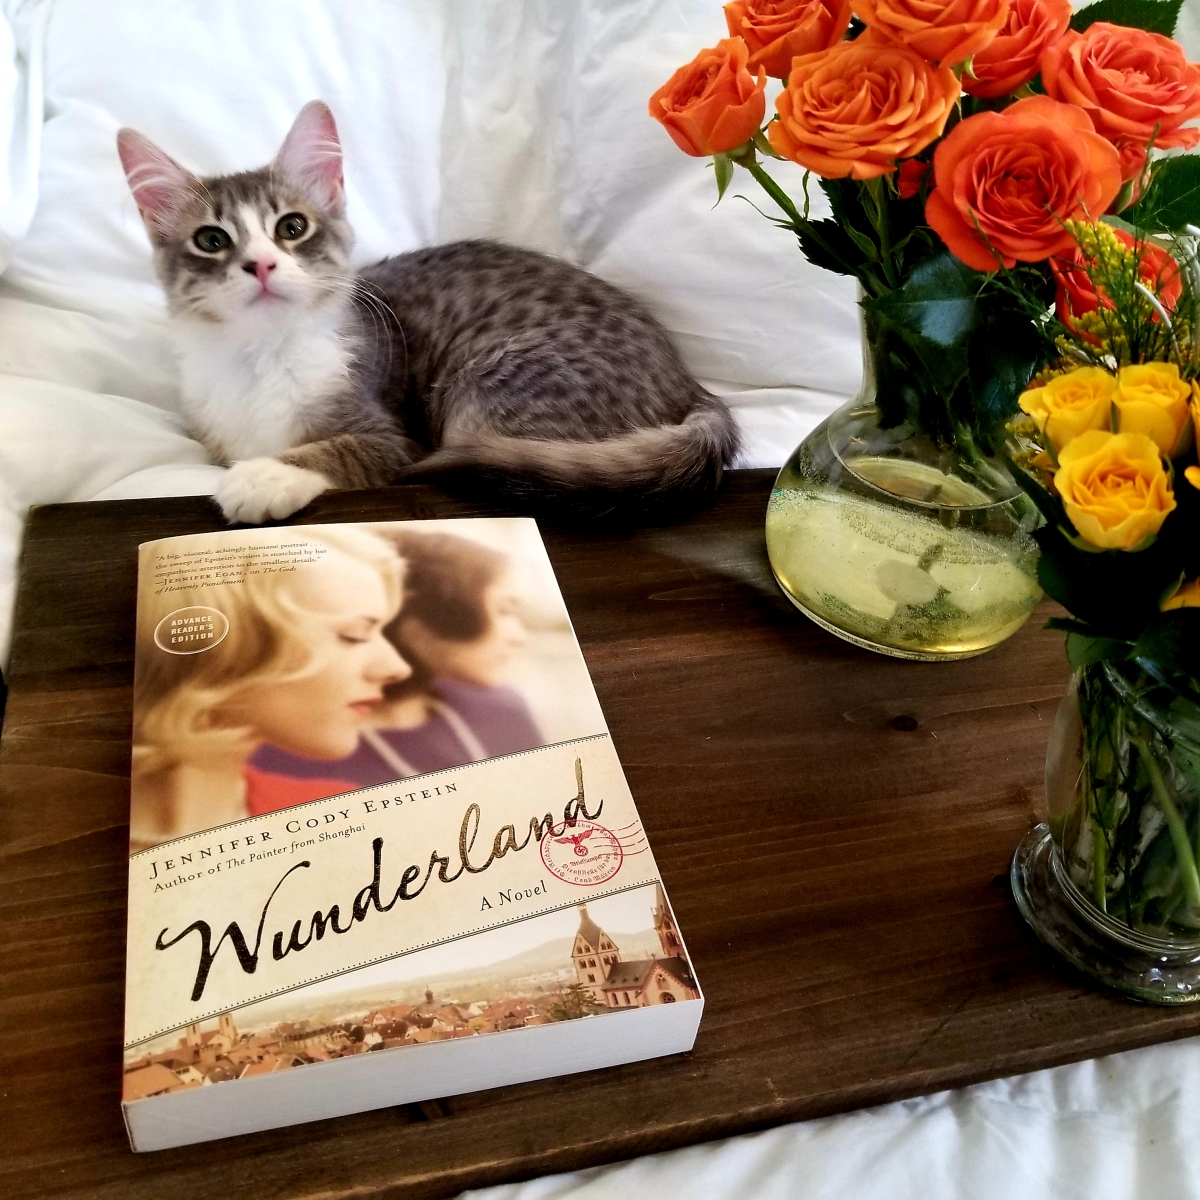 Wunderland by Jennifer Cody Epstein #bookreview #tarheelreader #thrwunderland @jenncodyepstein @crownpublishing #wunderland